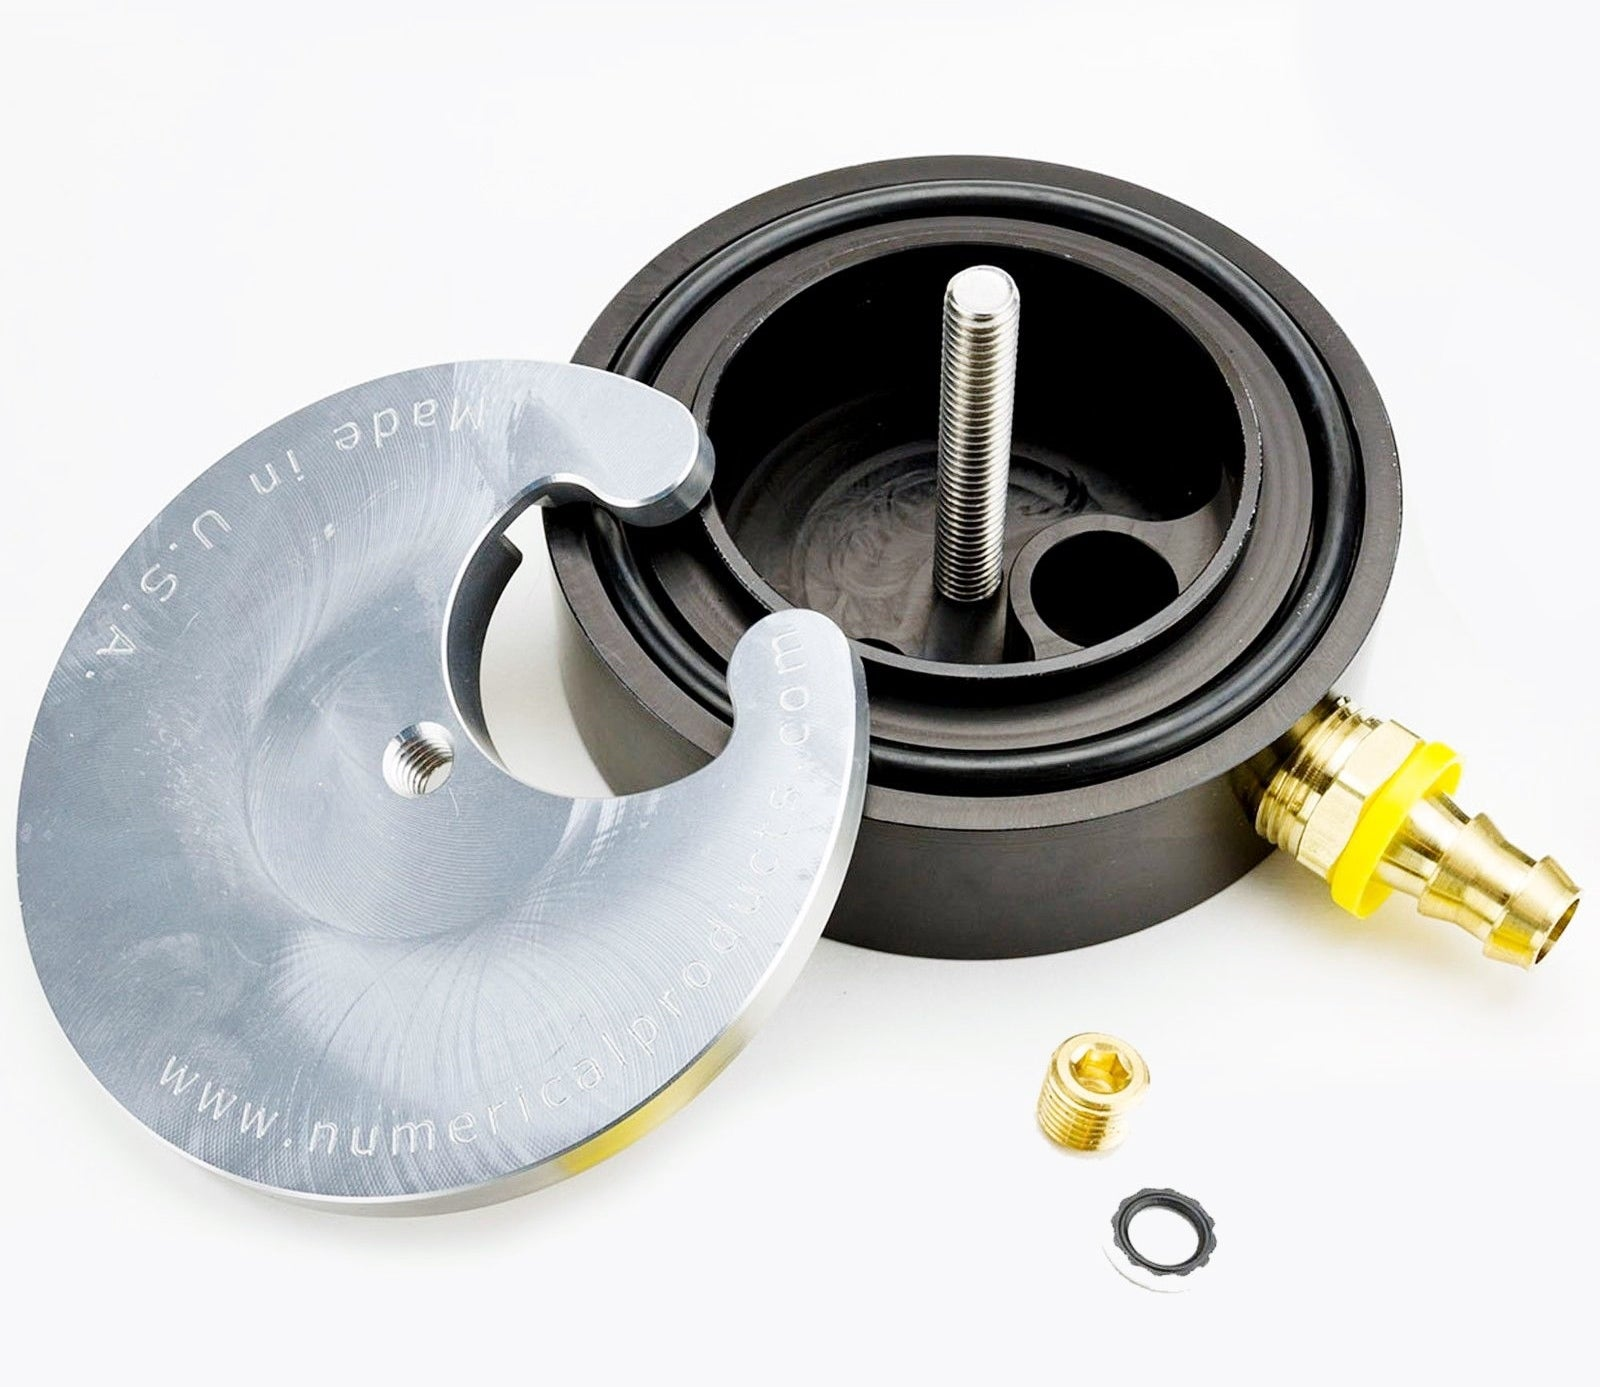 Fuel Tank Sump Kit For Fass Airdog Fuelab Pump Duramax Powerstroke Filter Replacement Cummins